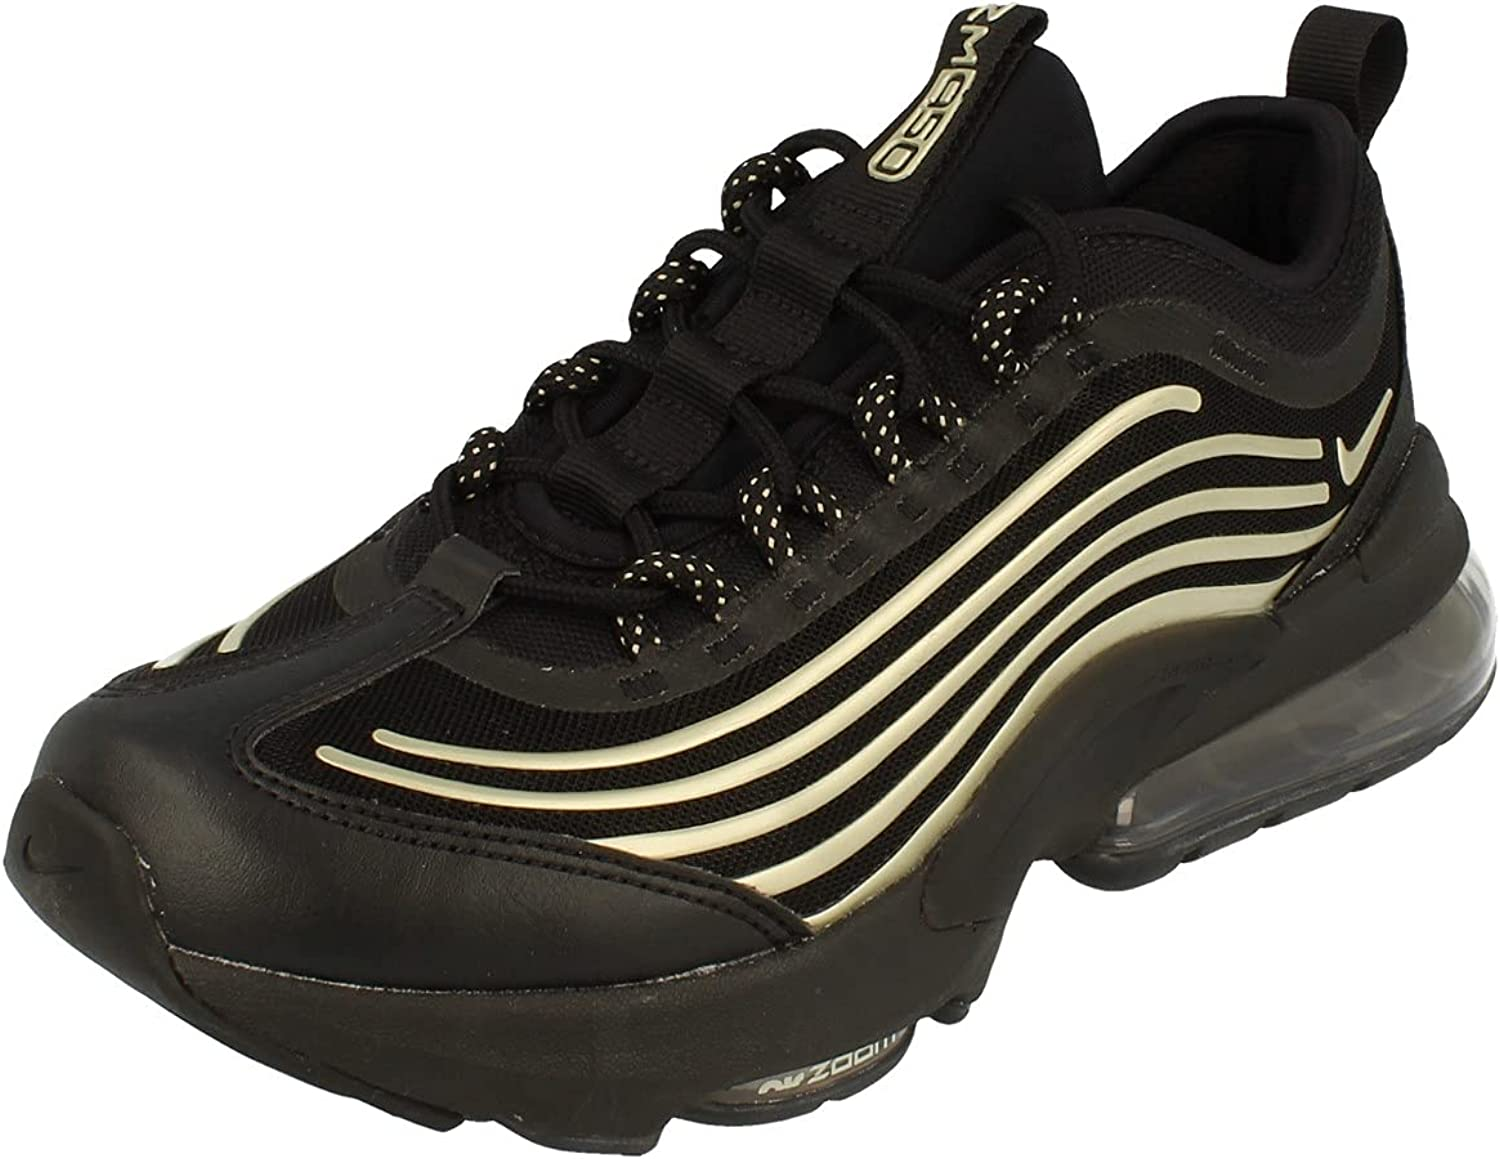 Nike Air Max Zm950 GS Running Trainers Dd3039 Sneakers Shoes